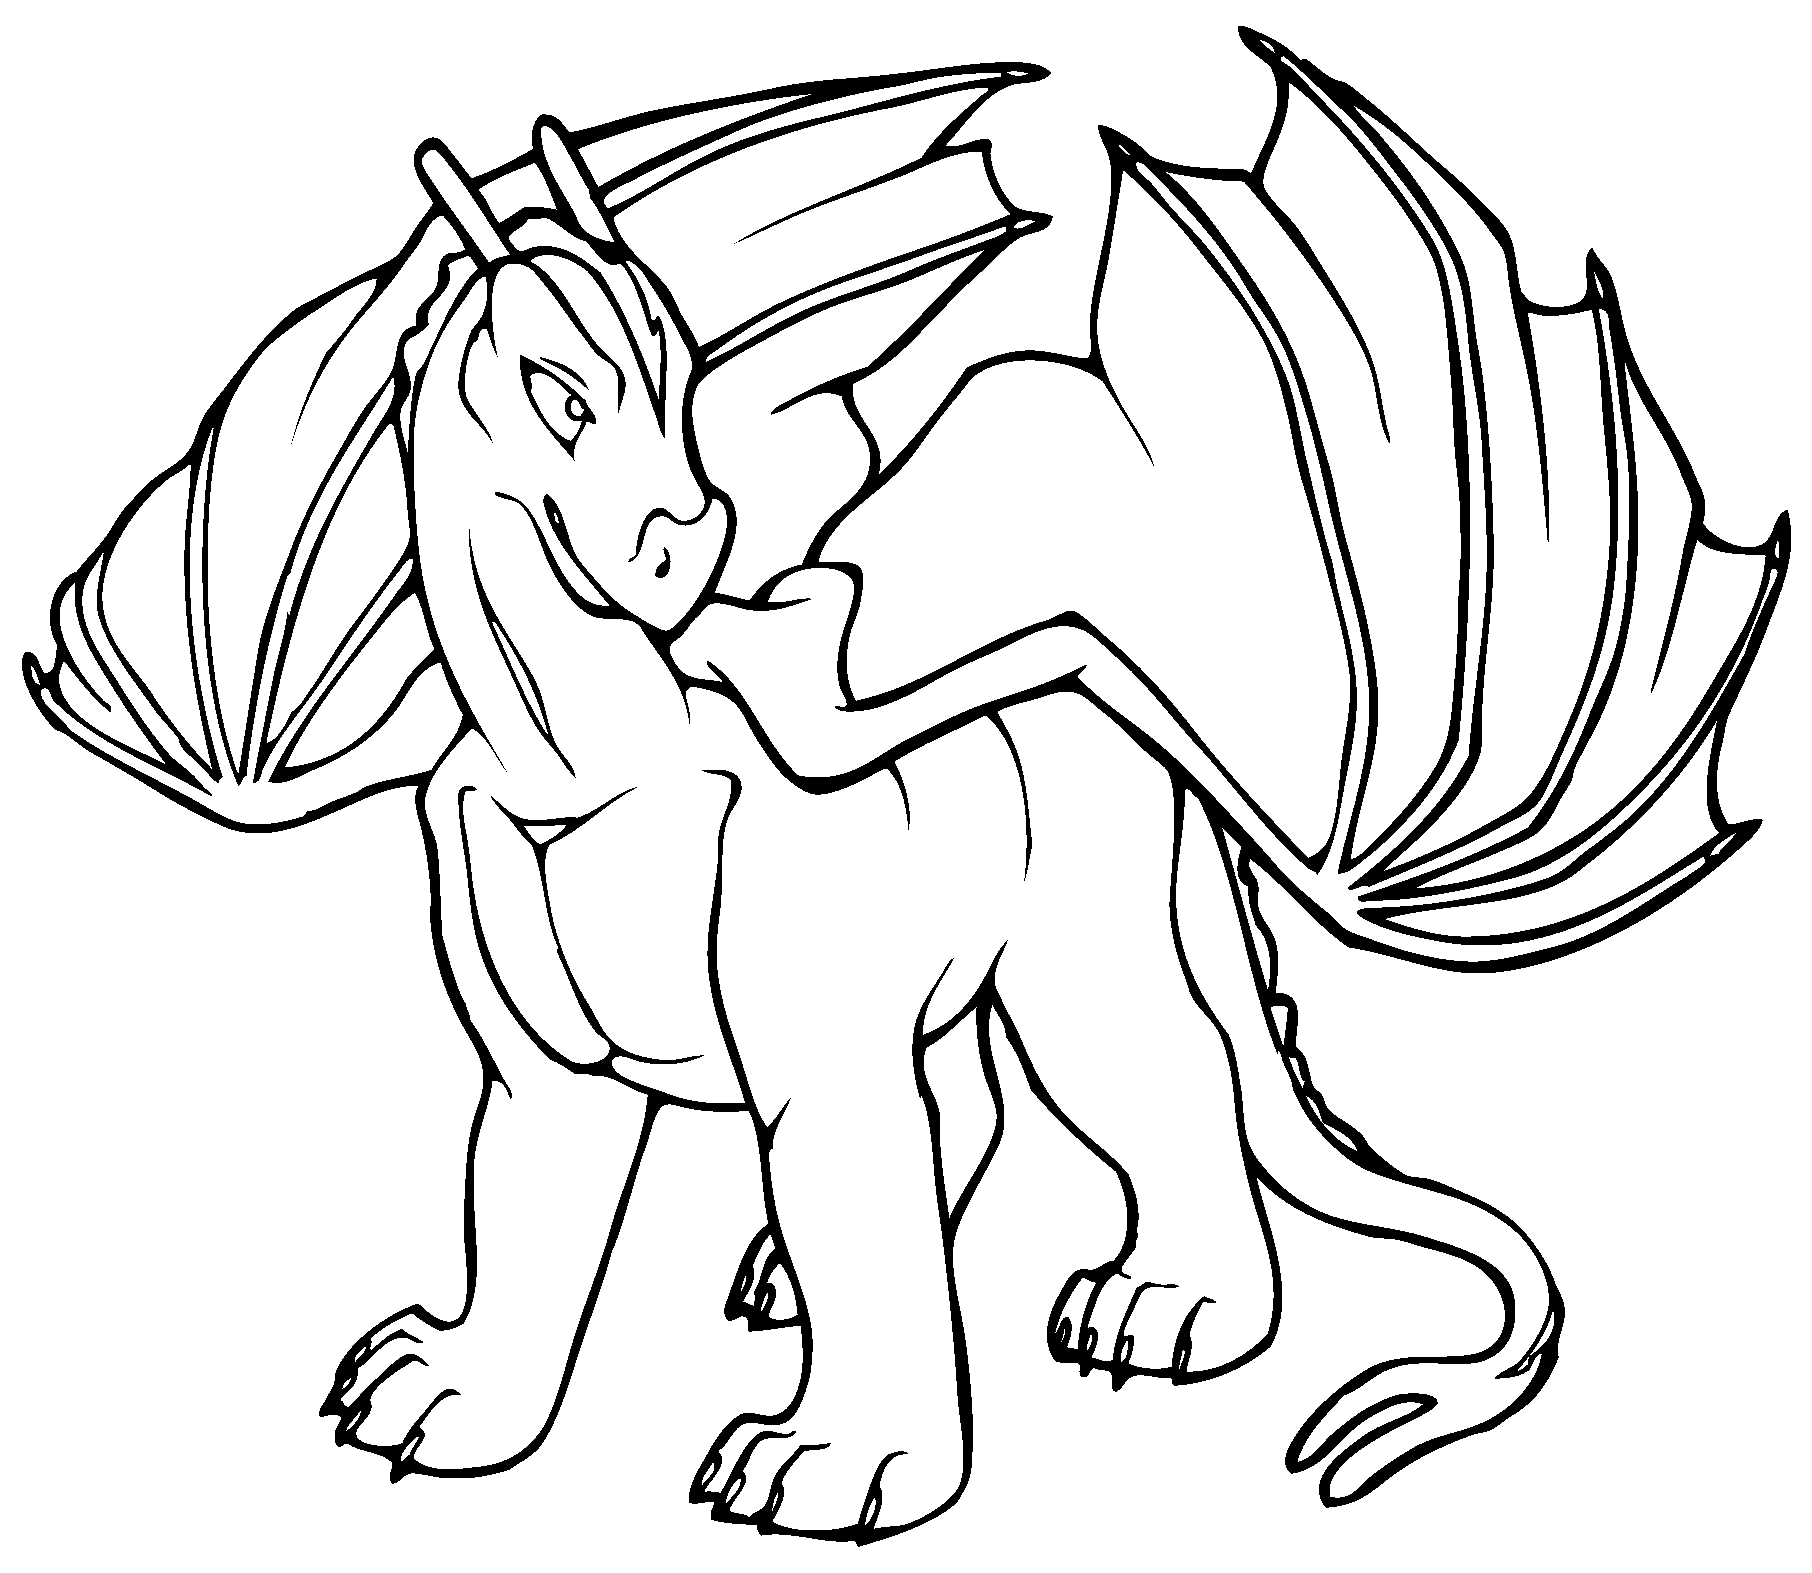 Printable coloring pages and dragons ~ Free Printable Dragon Coloring Pages For Kids | lettas ...